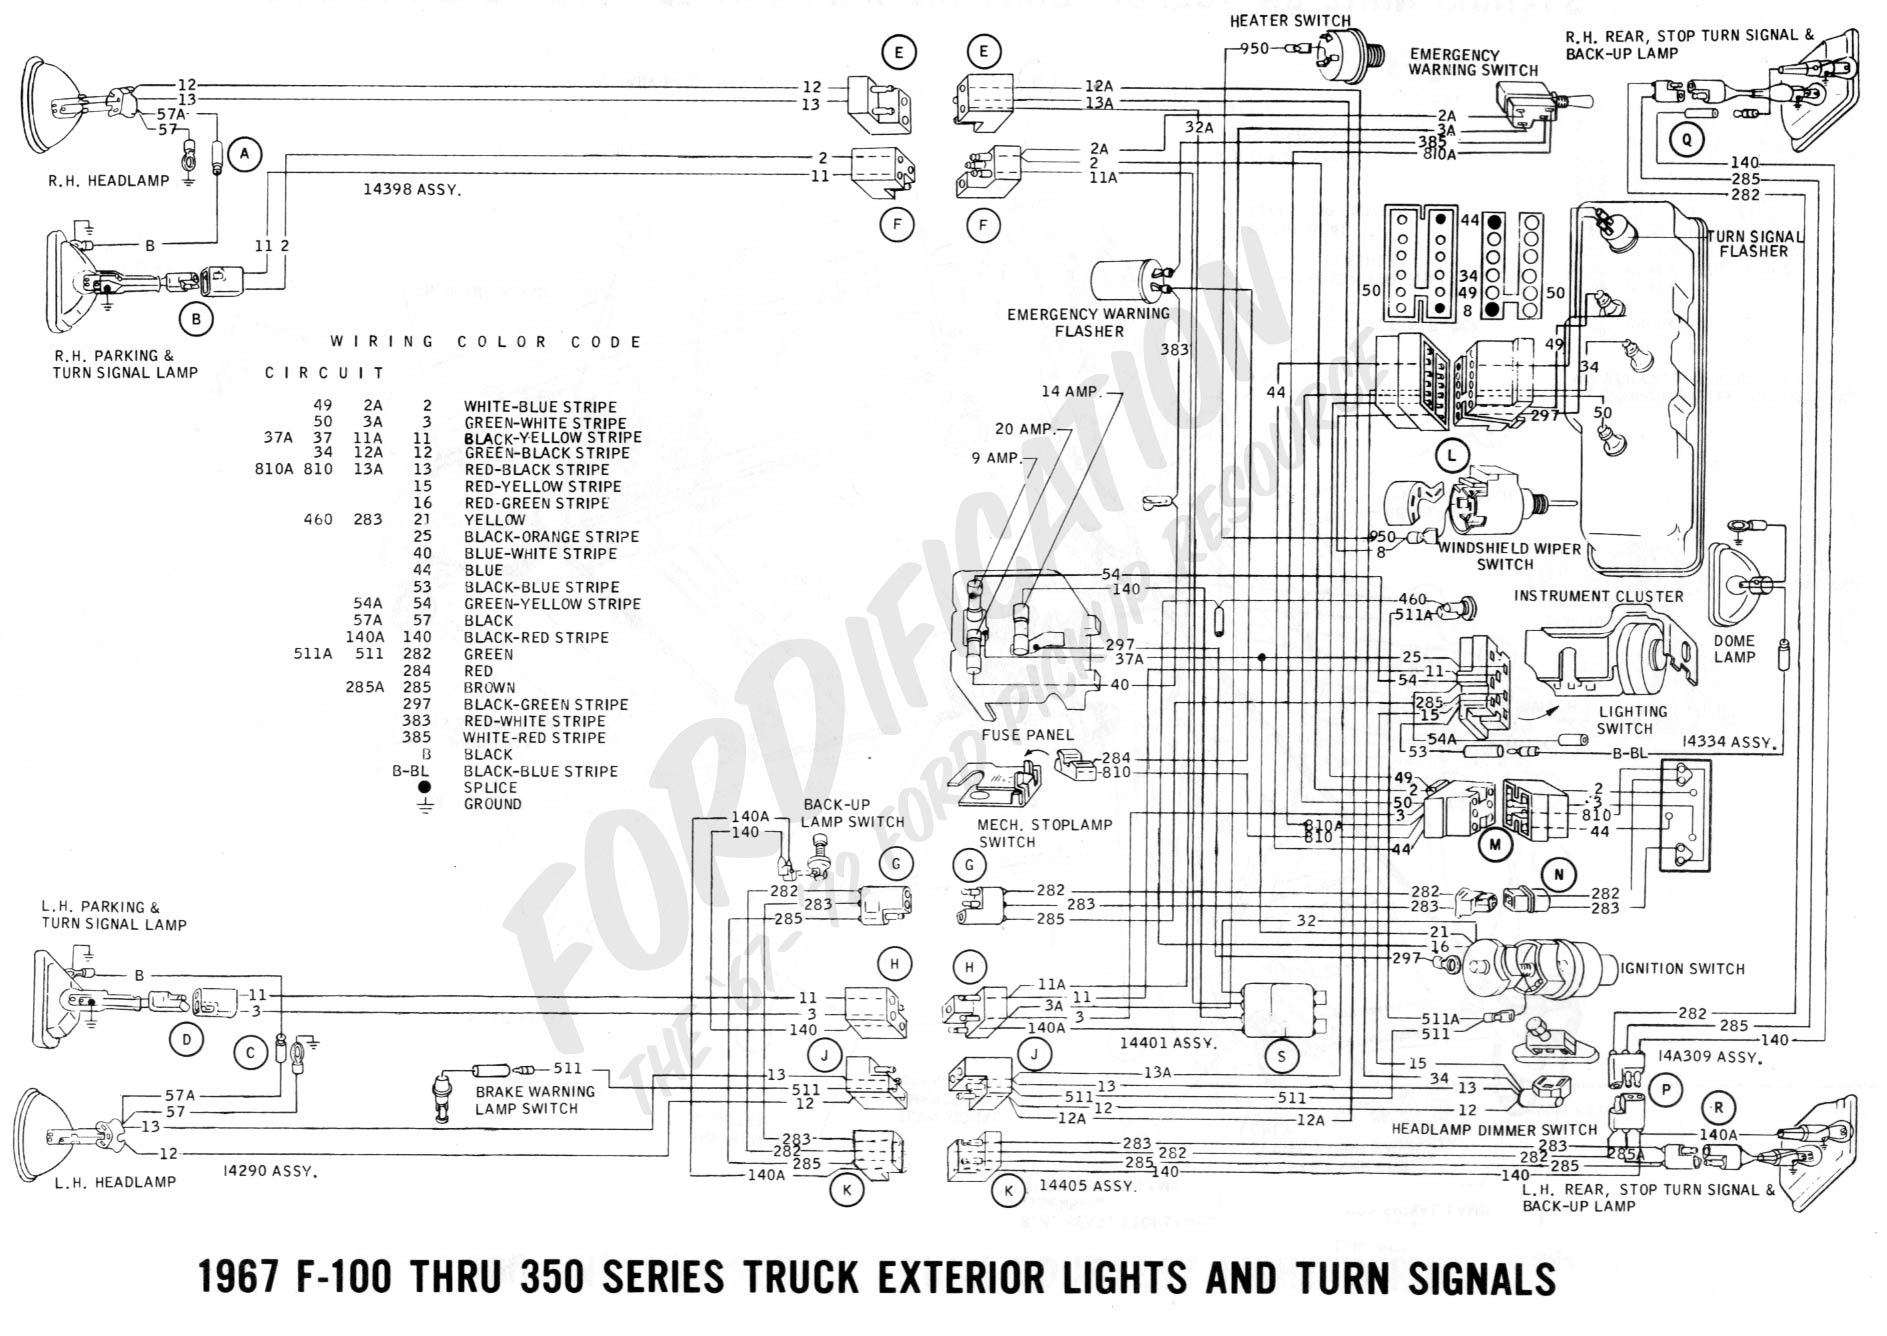 hight resolution of 92 mustang turn signal wiring diagram detailed schematics diagram 2000 ford e150 fuse box diagram 02